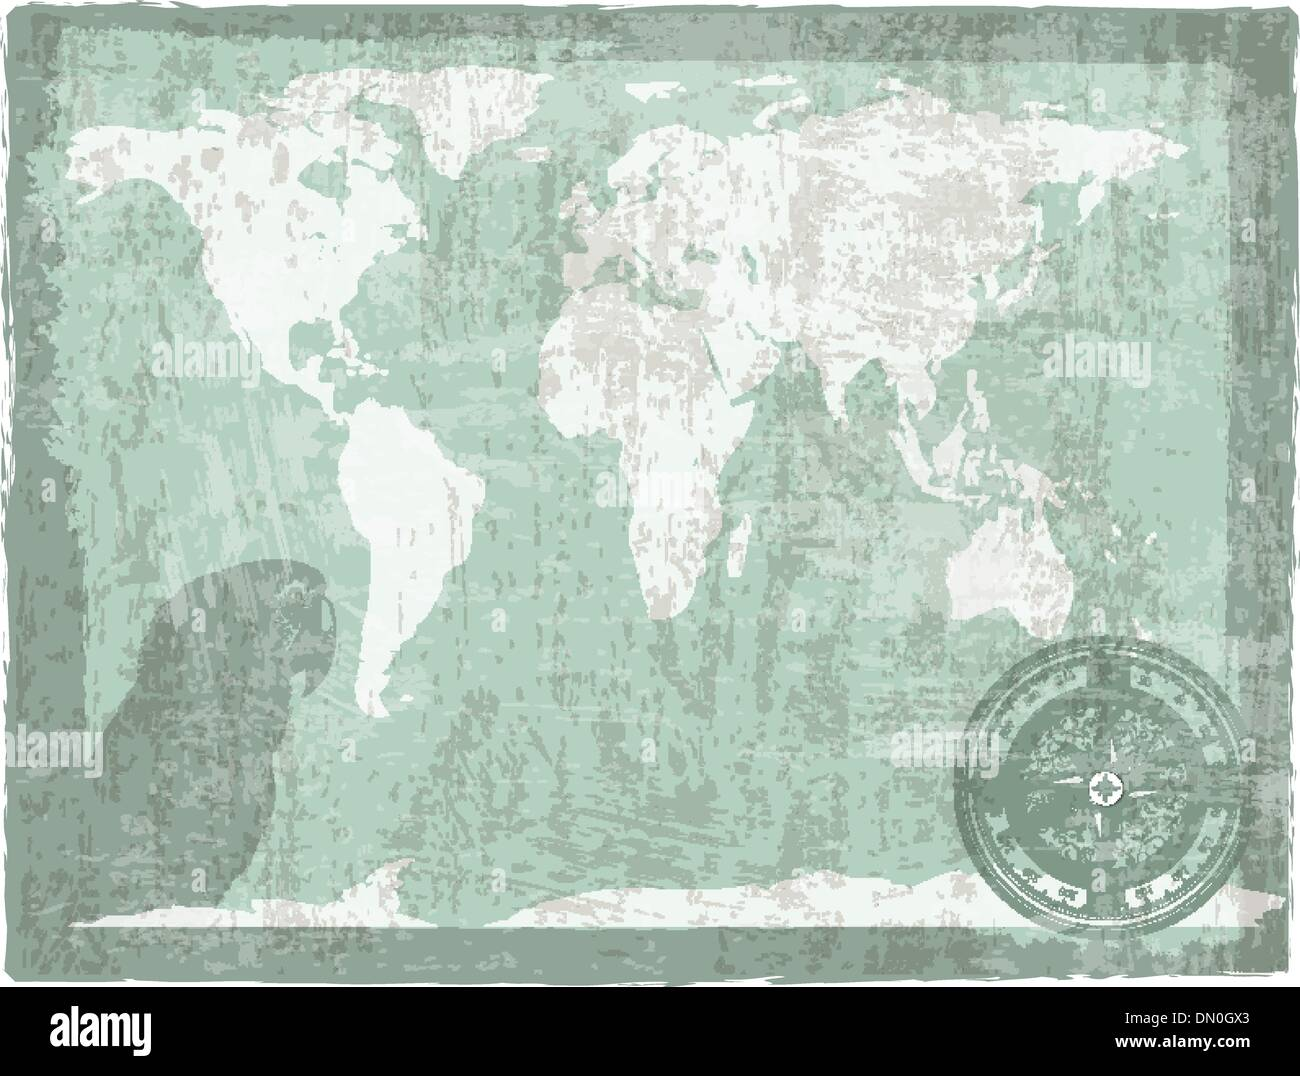 travel vintage background - Stock Vector